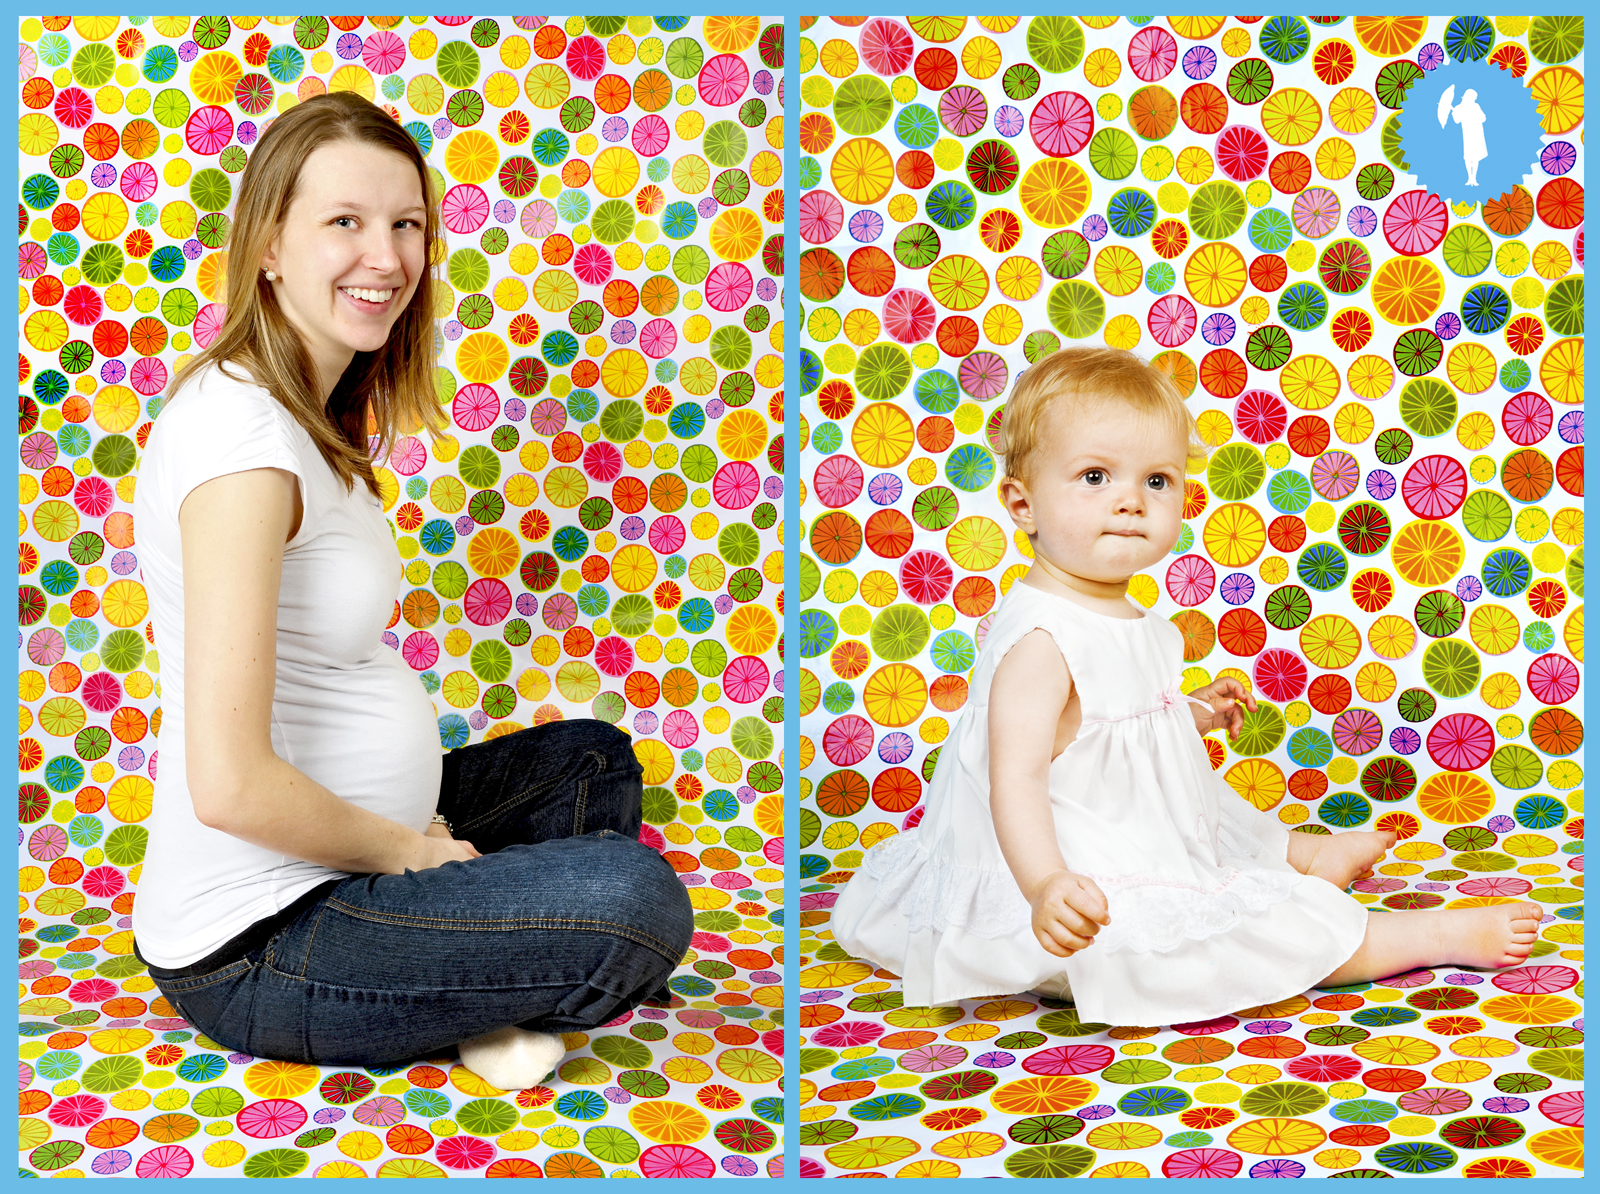 Family photography in Kitchener by Emily Beatty.